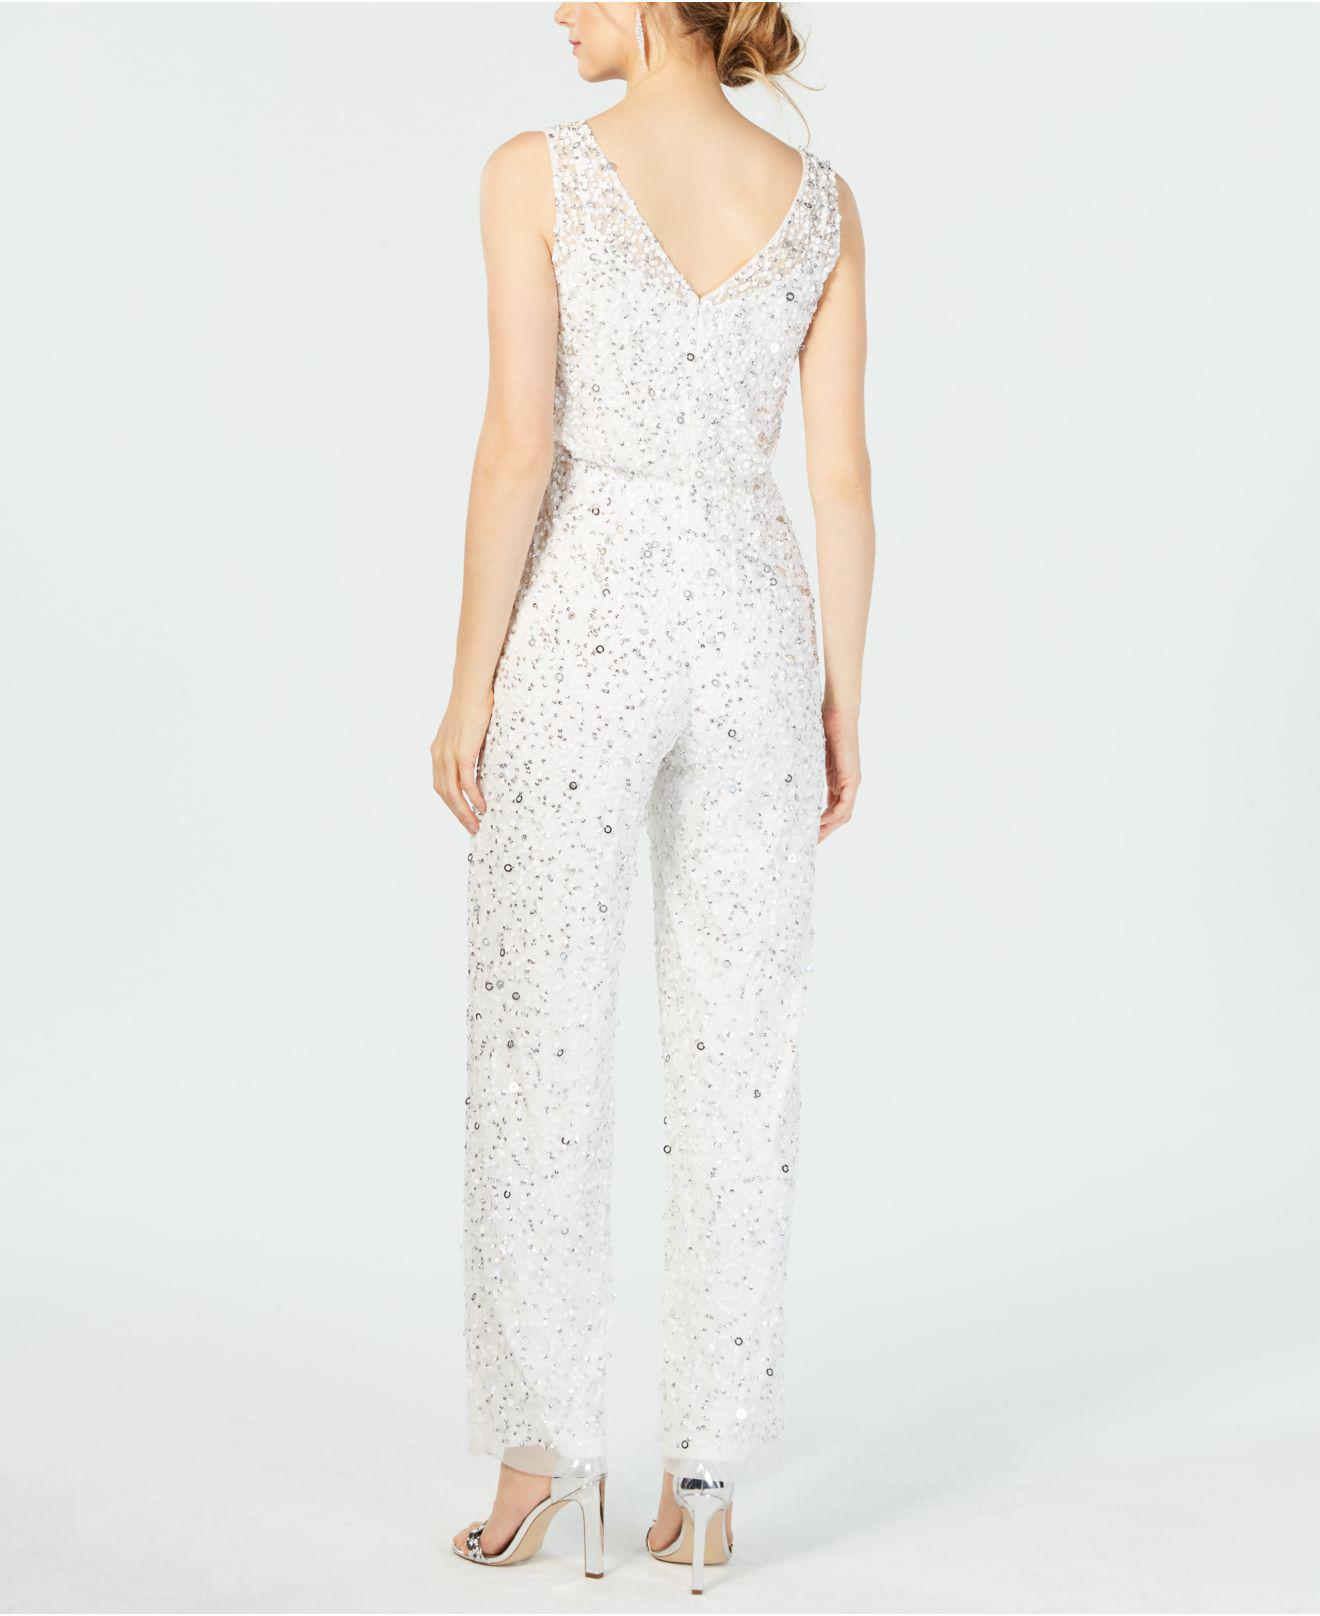 62d1bf68820 Lyst - Adrianna Papell Sequin-embellished Jumpsuit in White